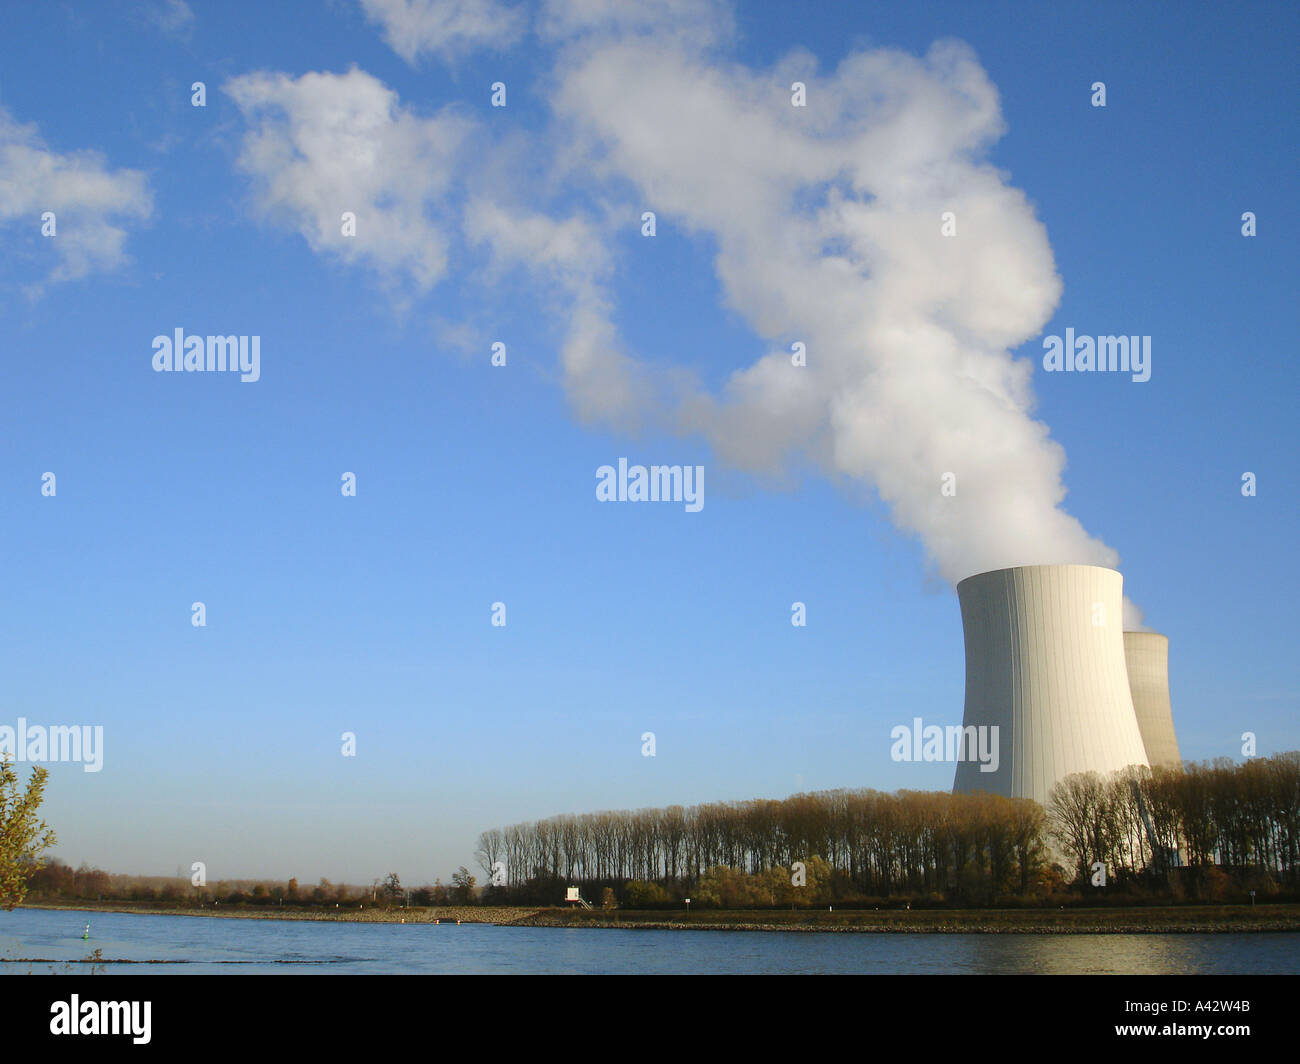 nuclear power station Kühltürme Atomkraftwerk Stock Photo